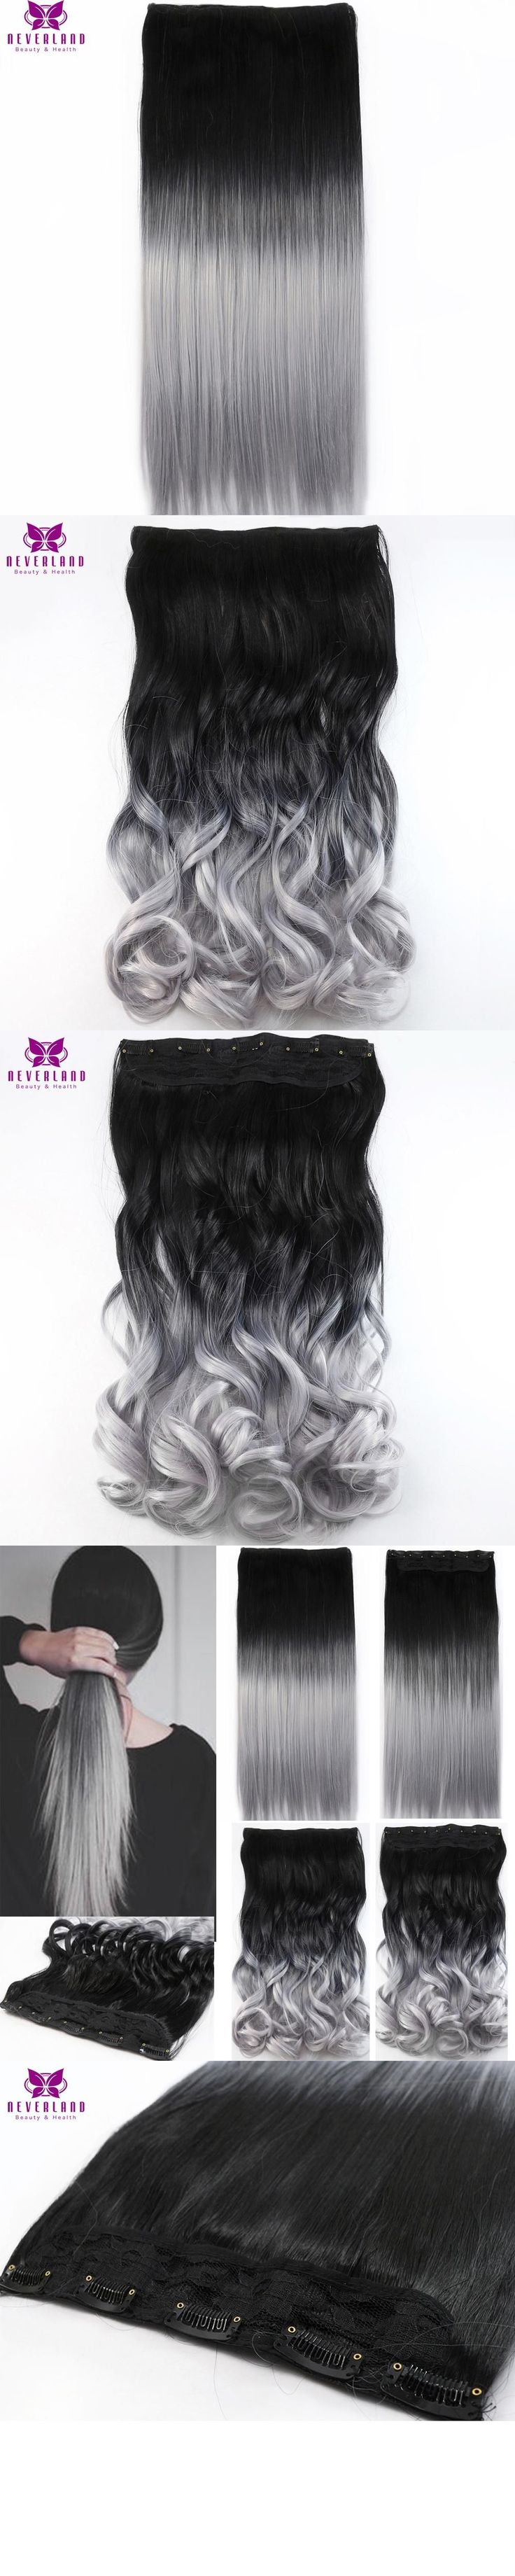 Neverland One Piece Hair Pad 60cm 5 Clips Women Synthetic Hairpieces Black to Silver Grey Ombre Color Clip In On Hair Extensions